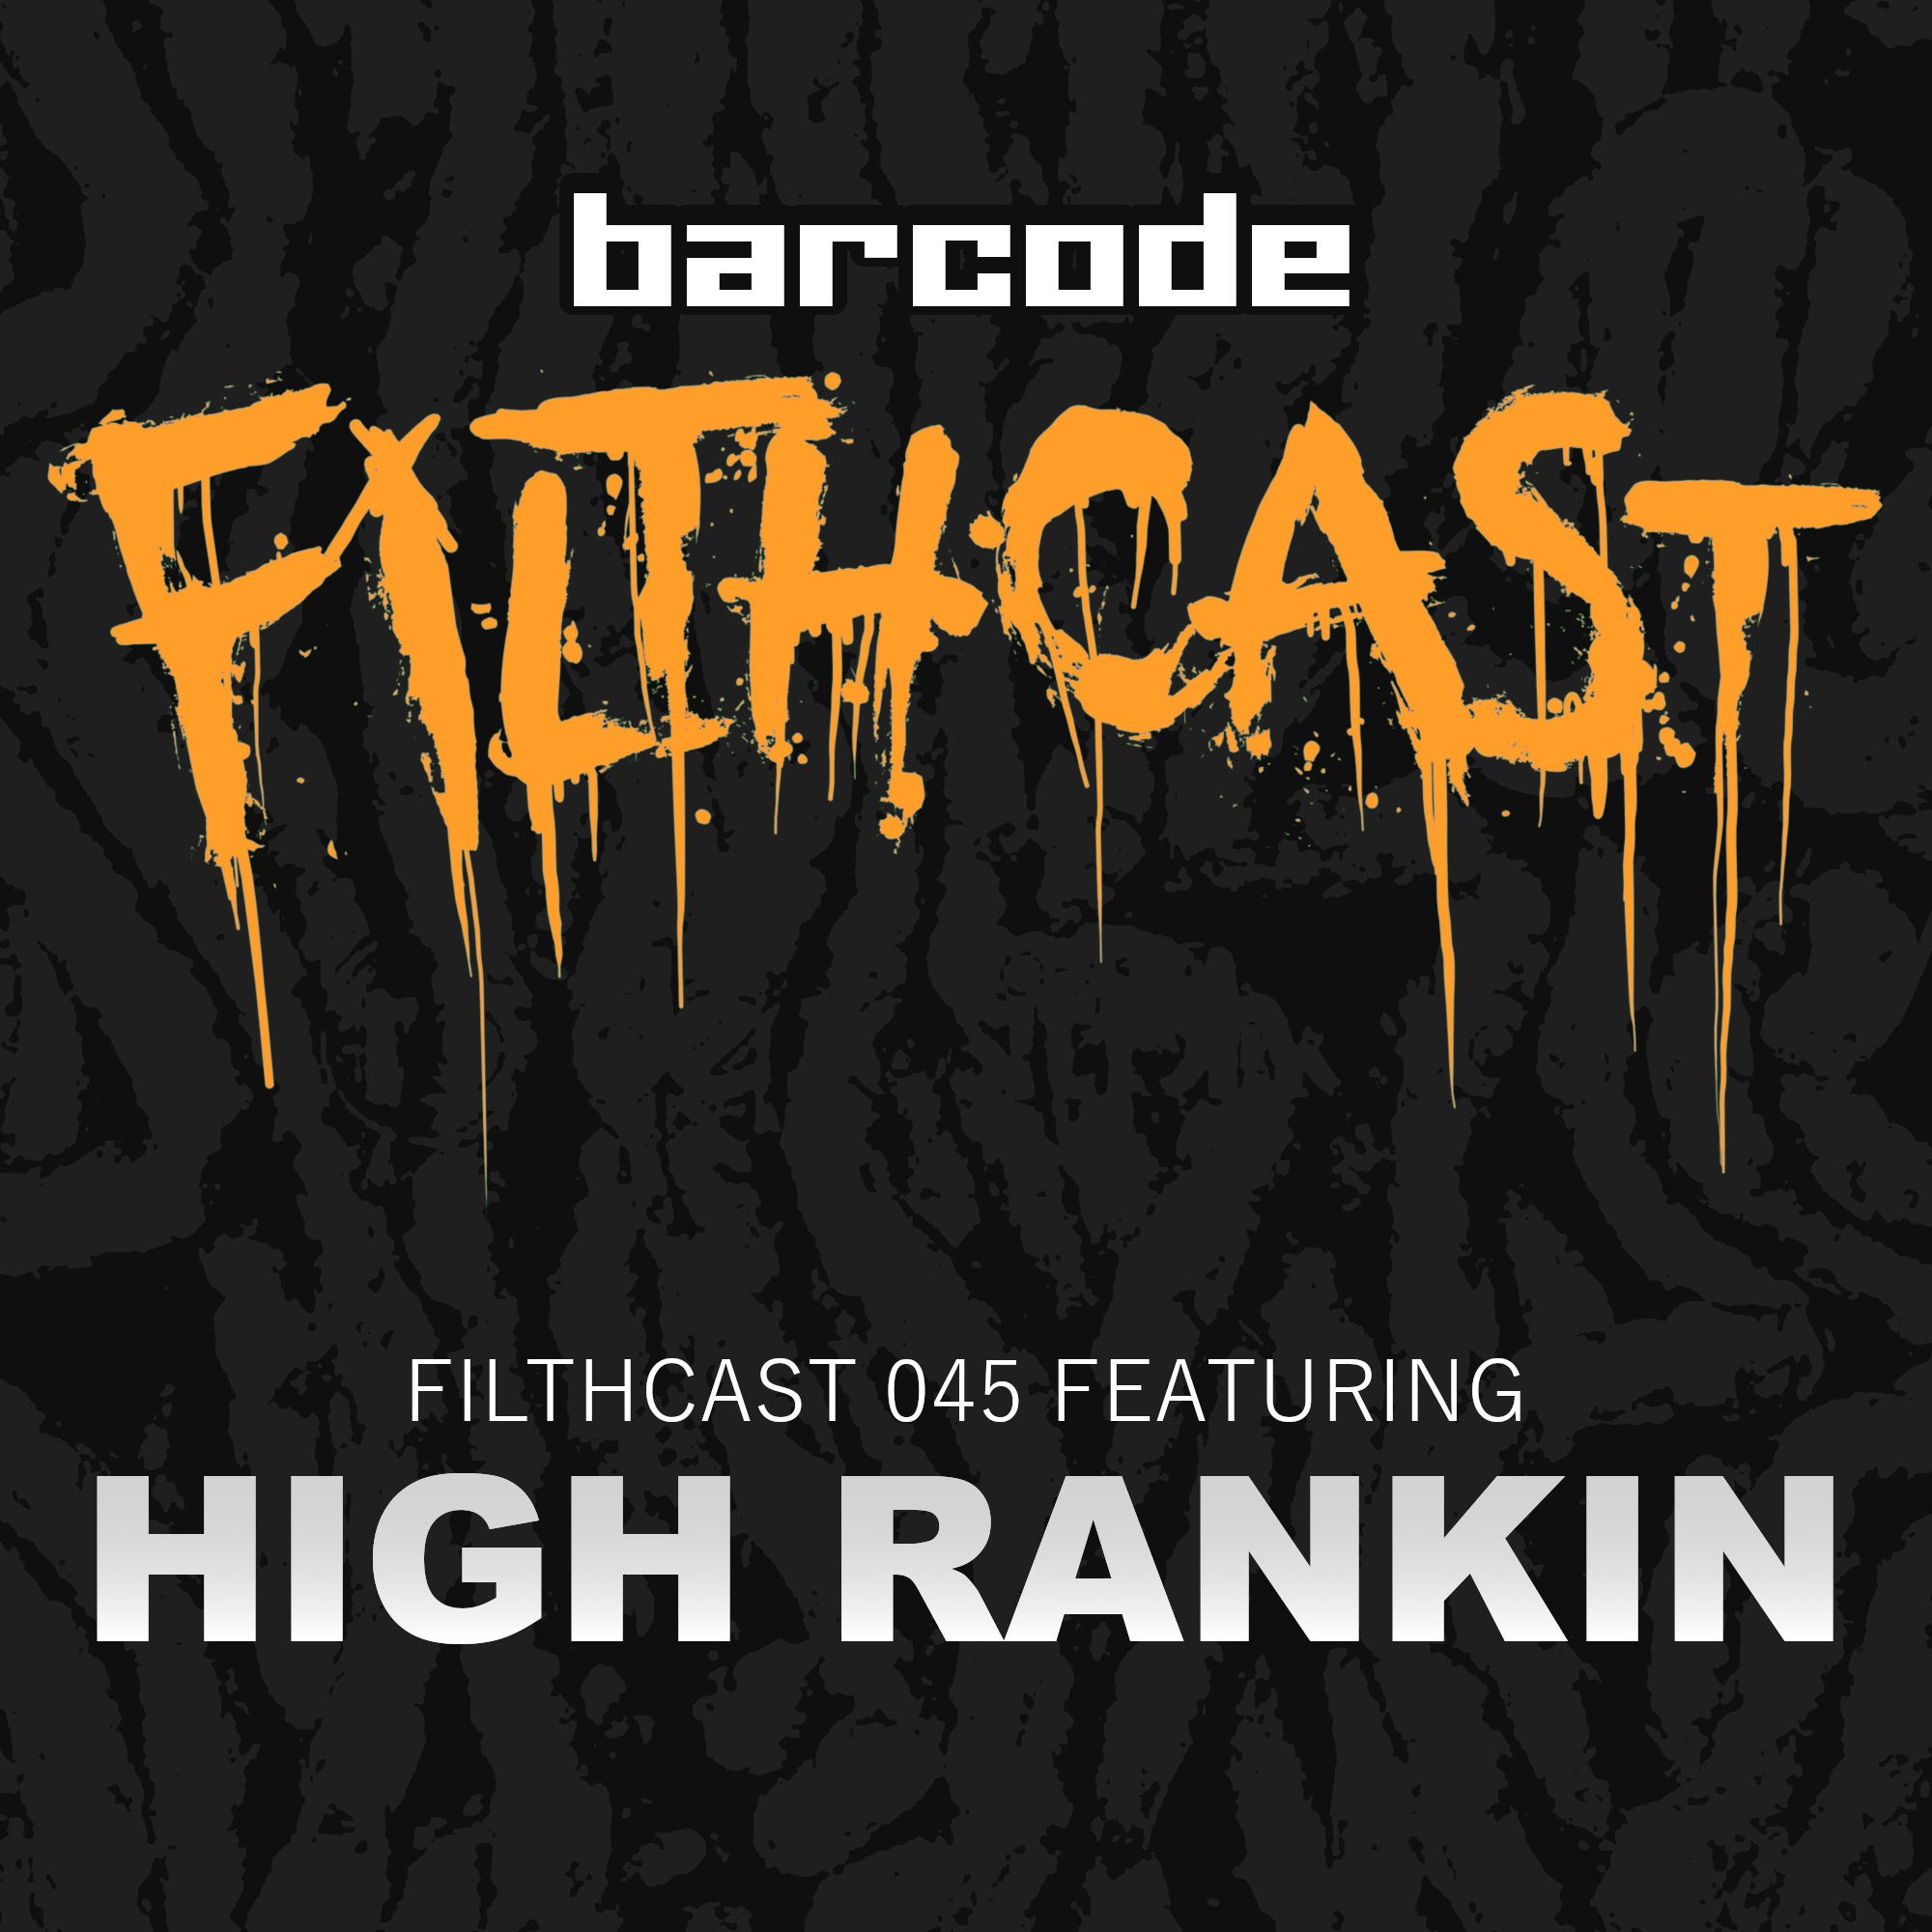 Latest filthcast - Filthcast 045 featuring High Rankin